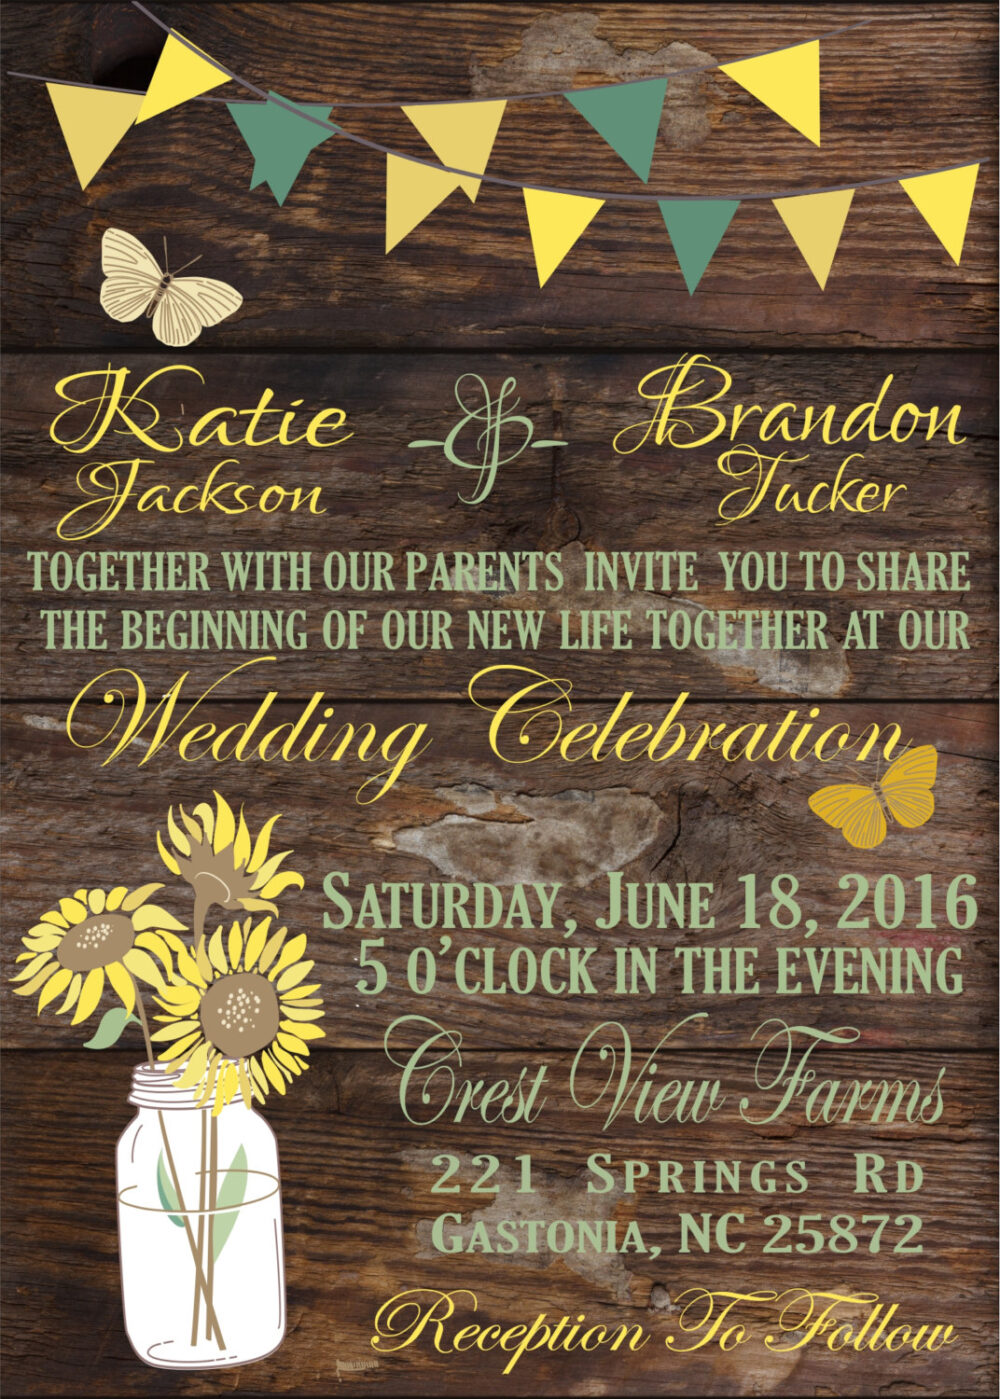 Rustic Wedding Invitation.sunflowers & Mason Jar. Suite, Rsvp. Save The Date. Fully Customizeable. Pdf. Invite. Shabby Chic